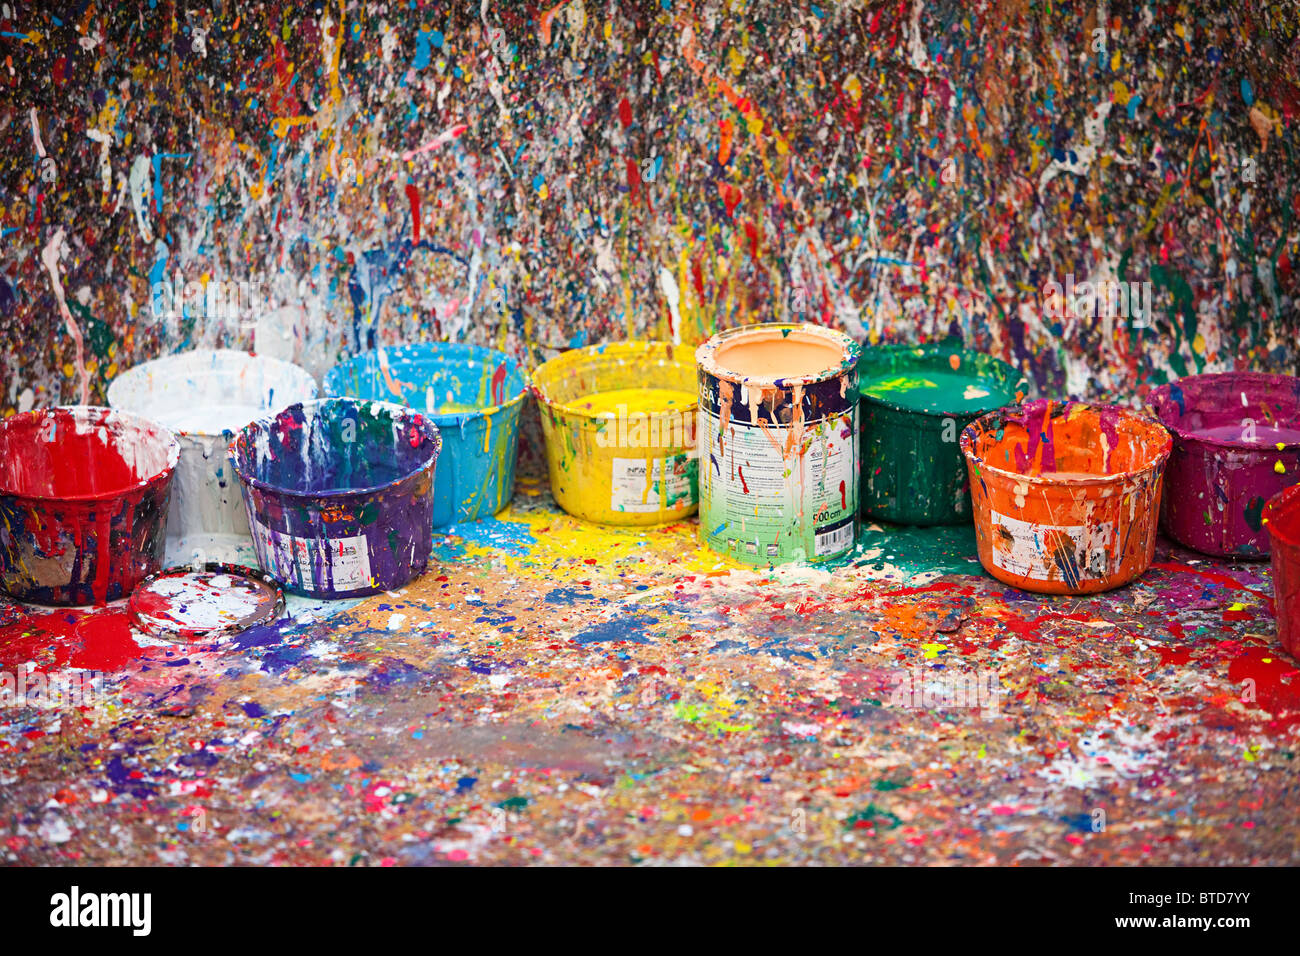 Splattered paint et pots, San Telmo, Buenos Aires, Argentine Photo Stock